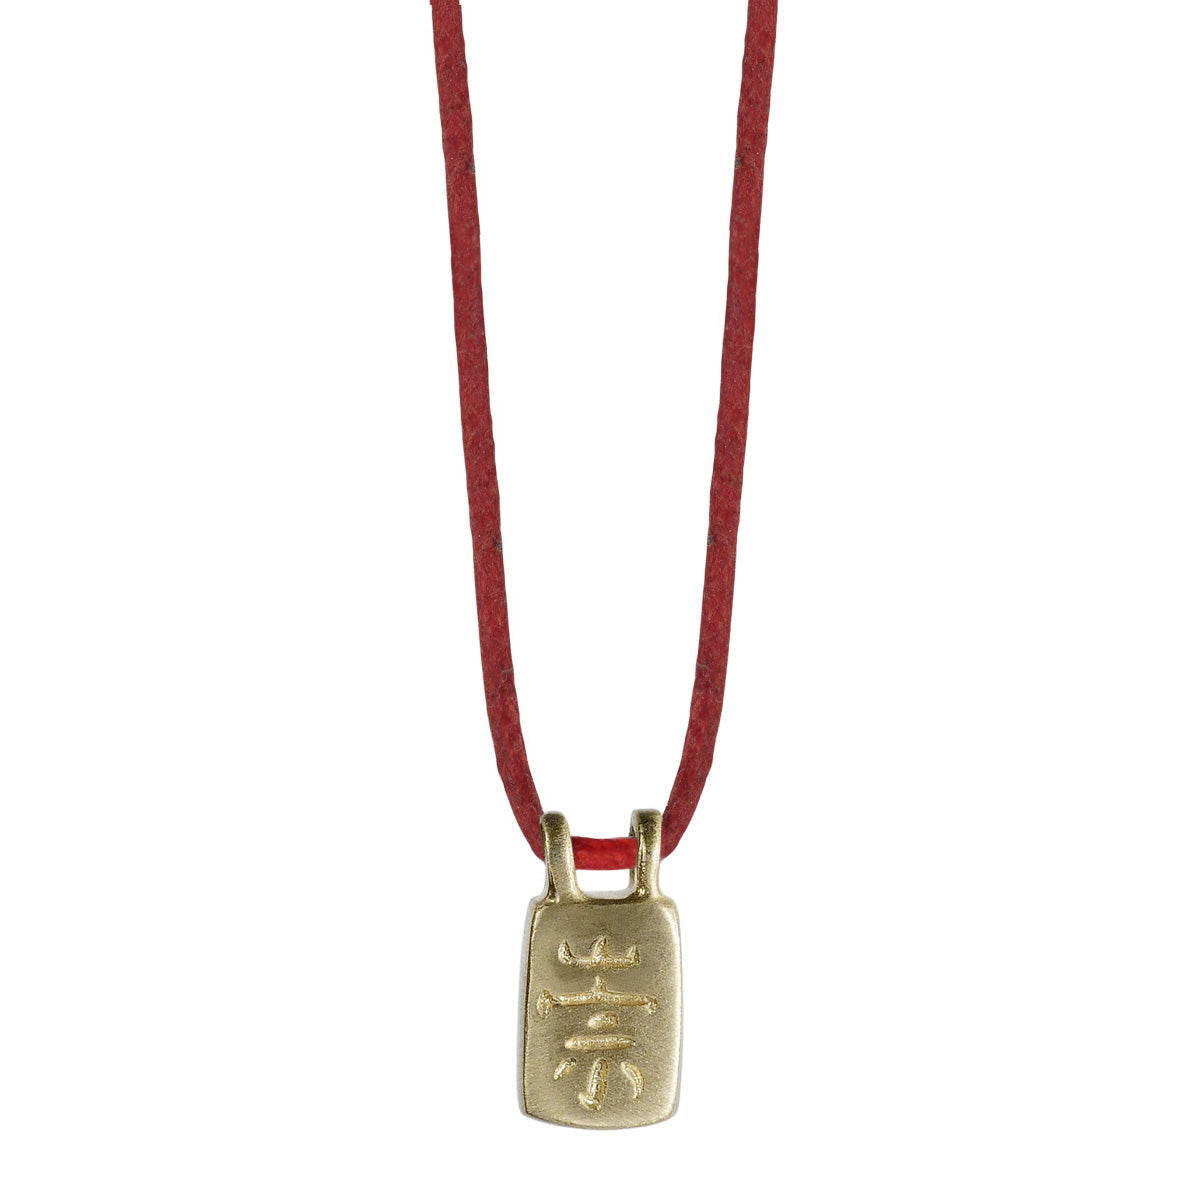 10K Gold Tiny Reverence and Benevolence Pendant on Red Cord